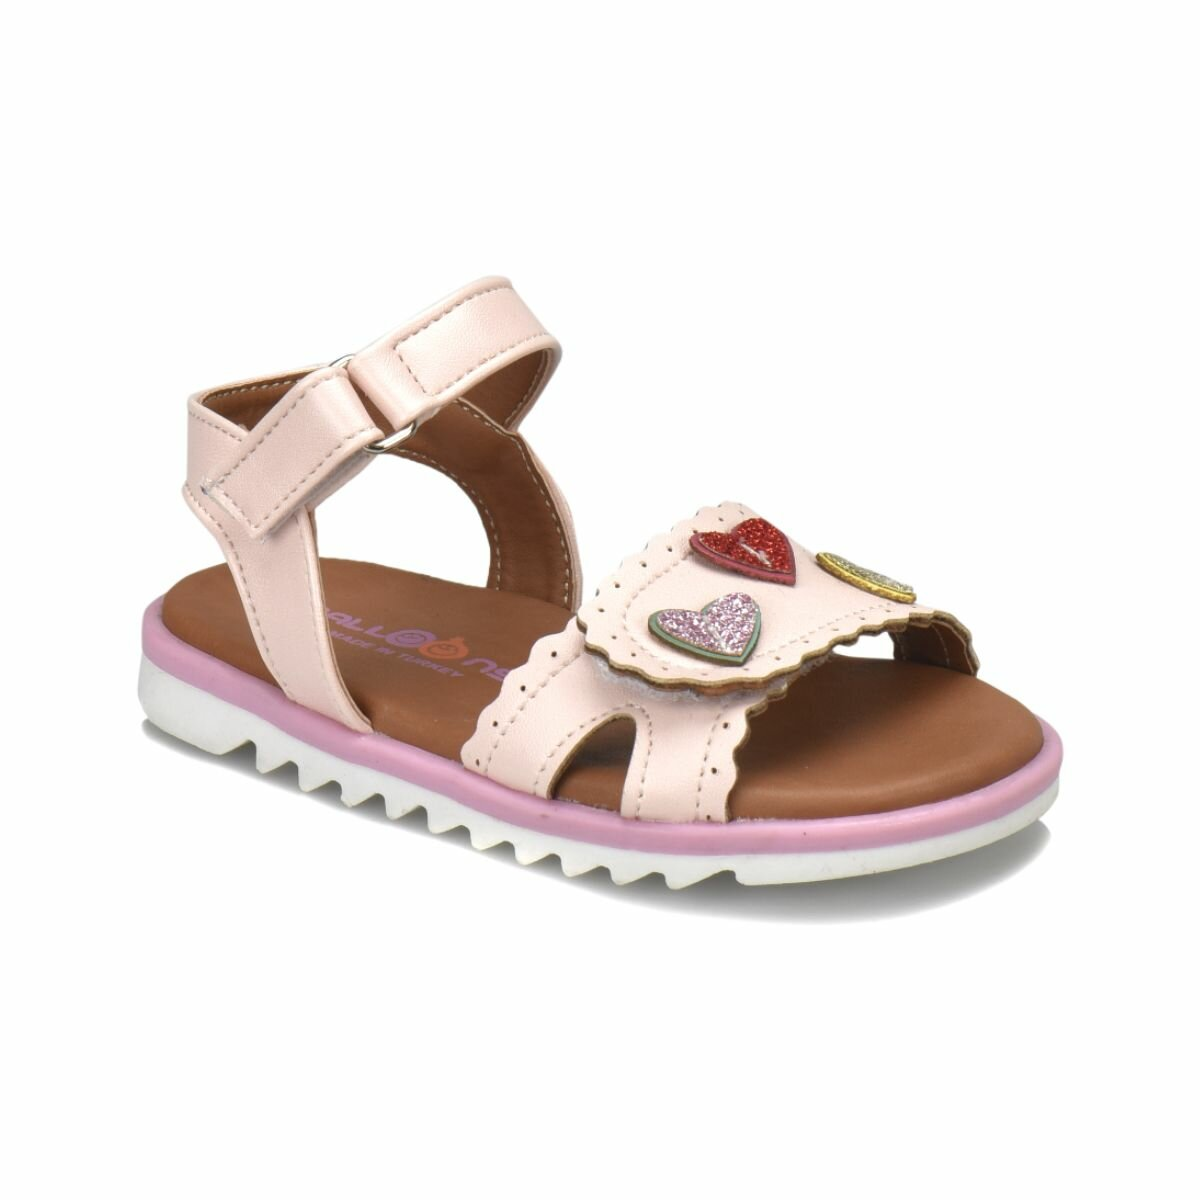 FLO PINKI Light Pink Female Child Sandals Balloon-s